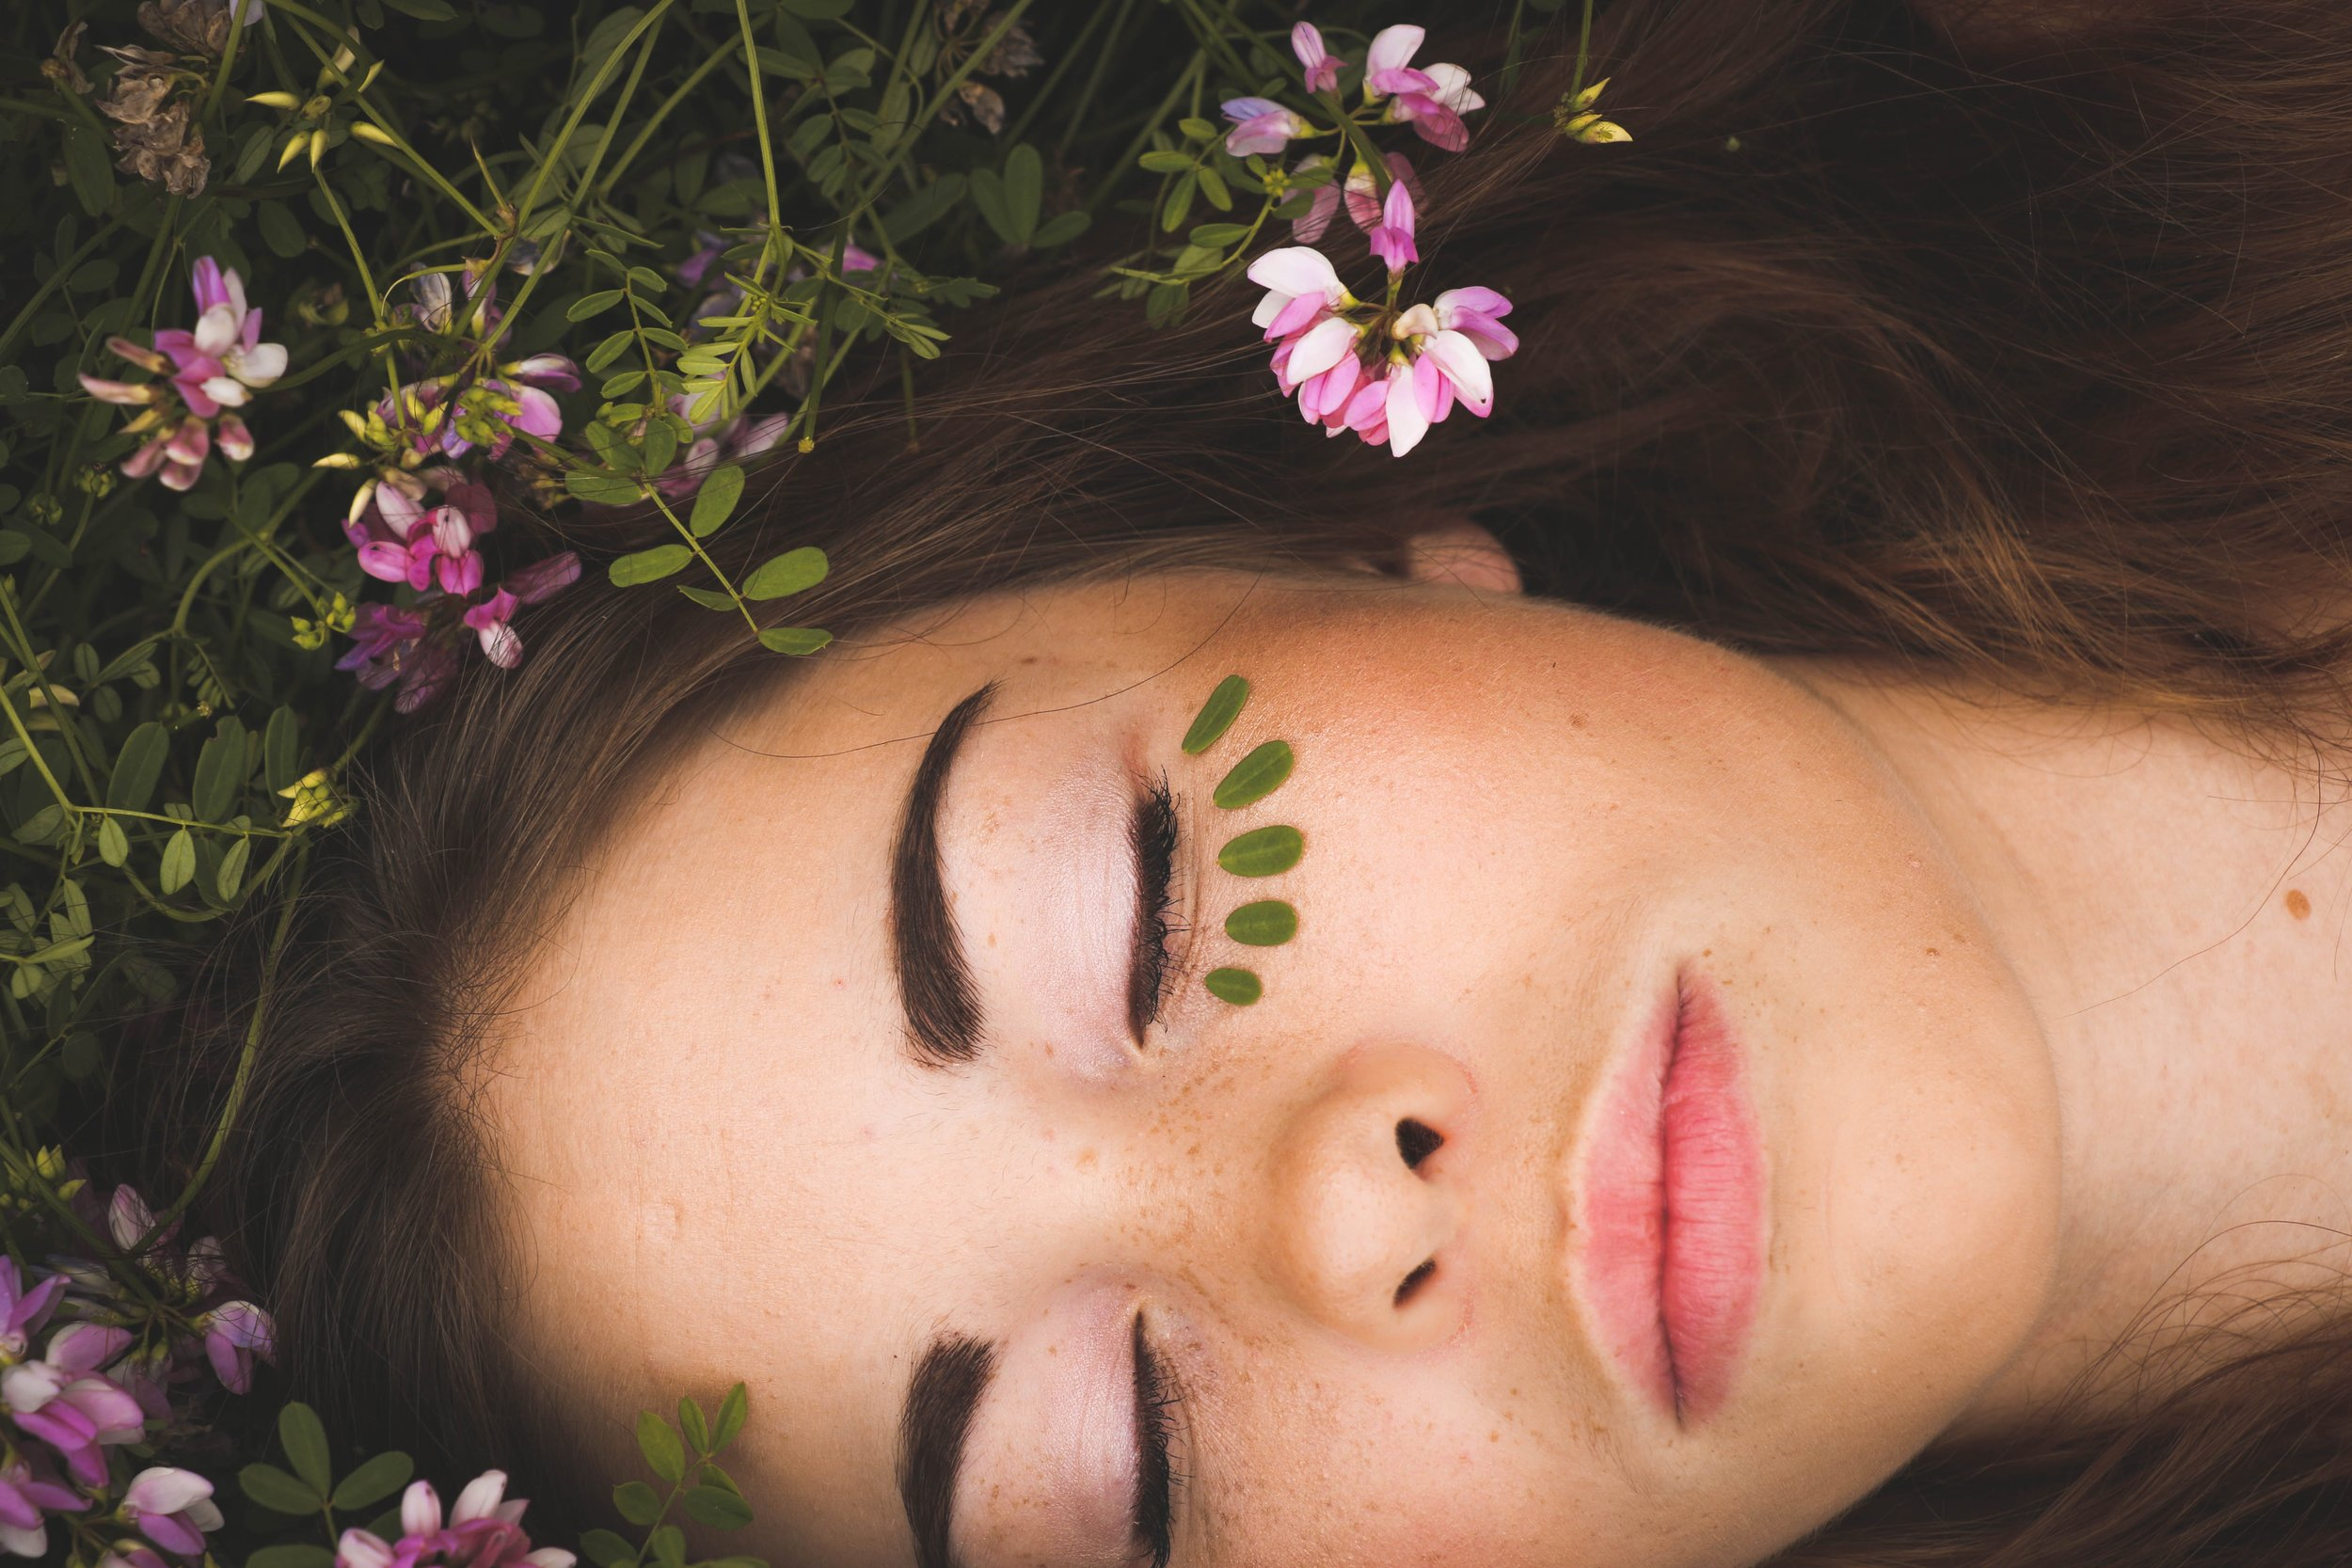 Cosmetic Acupuncture at Village Wellness Featured in The Mainline Times. -